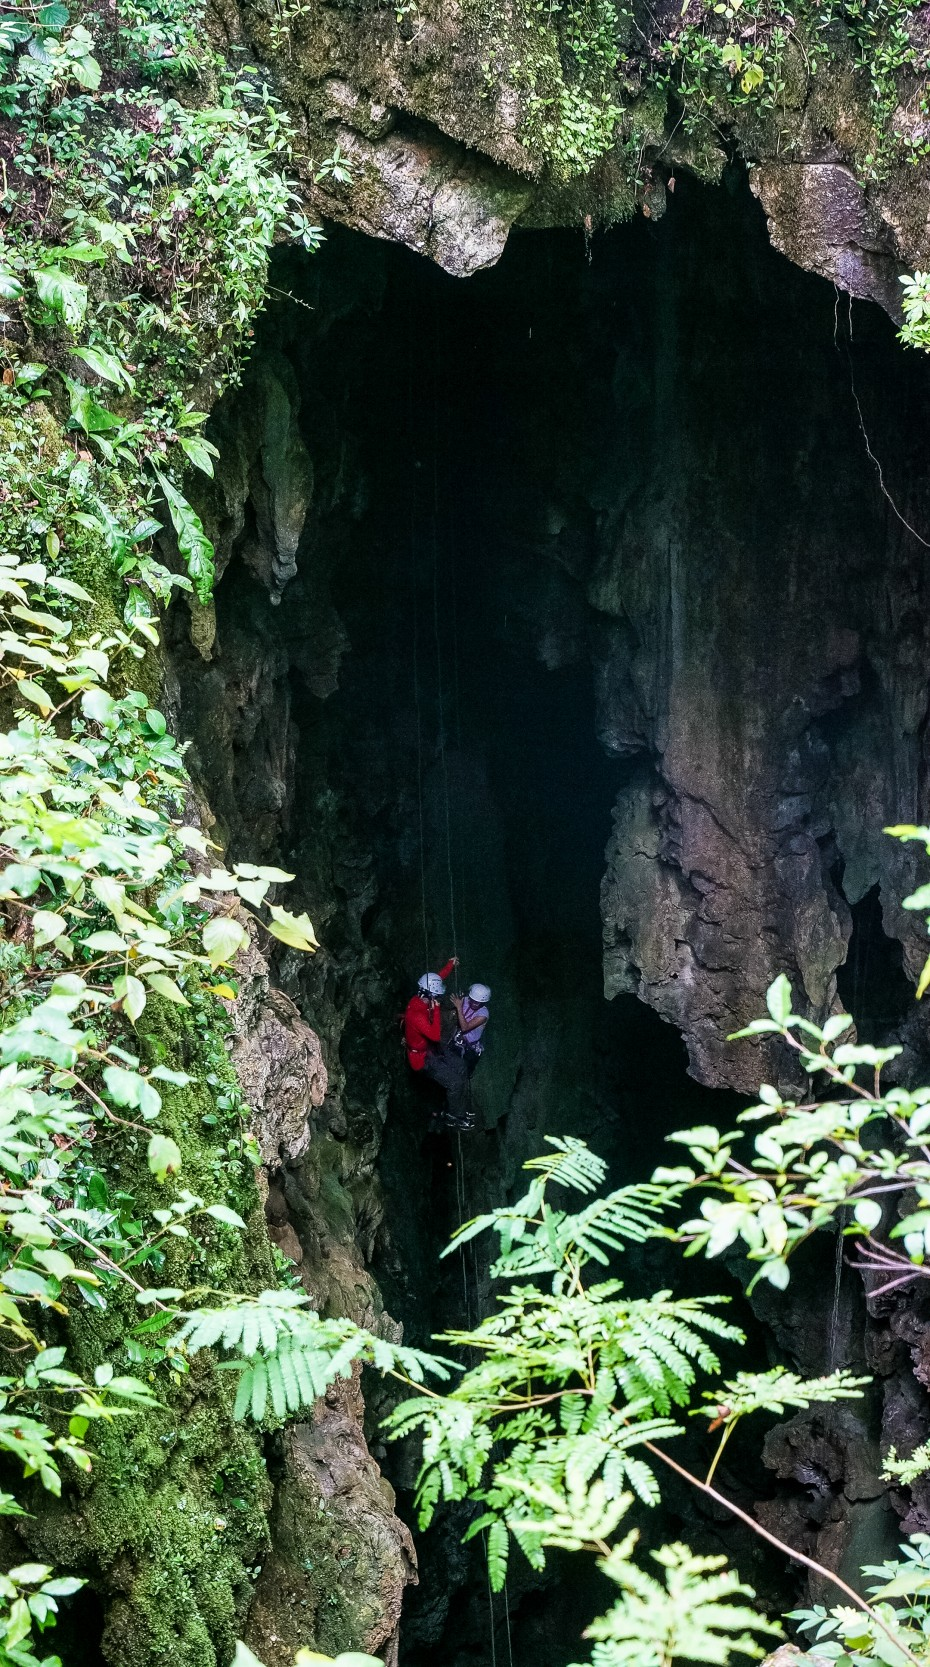 Entrance of the cave